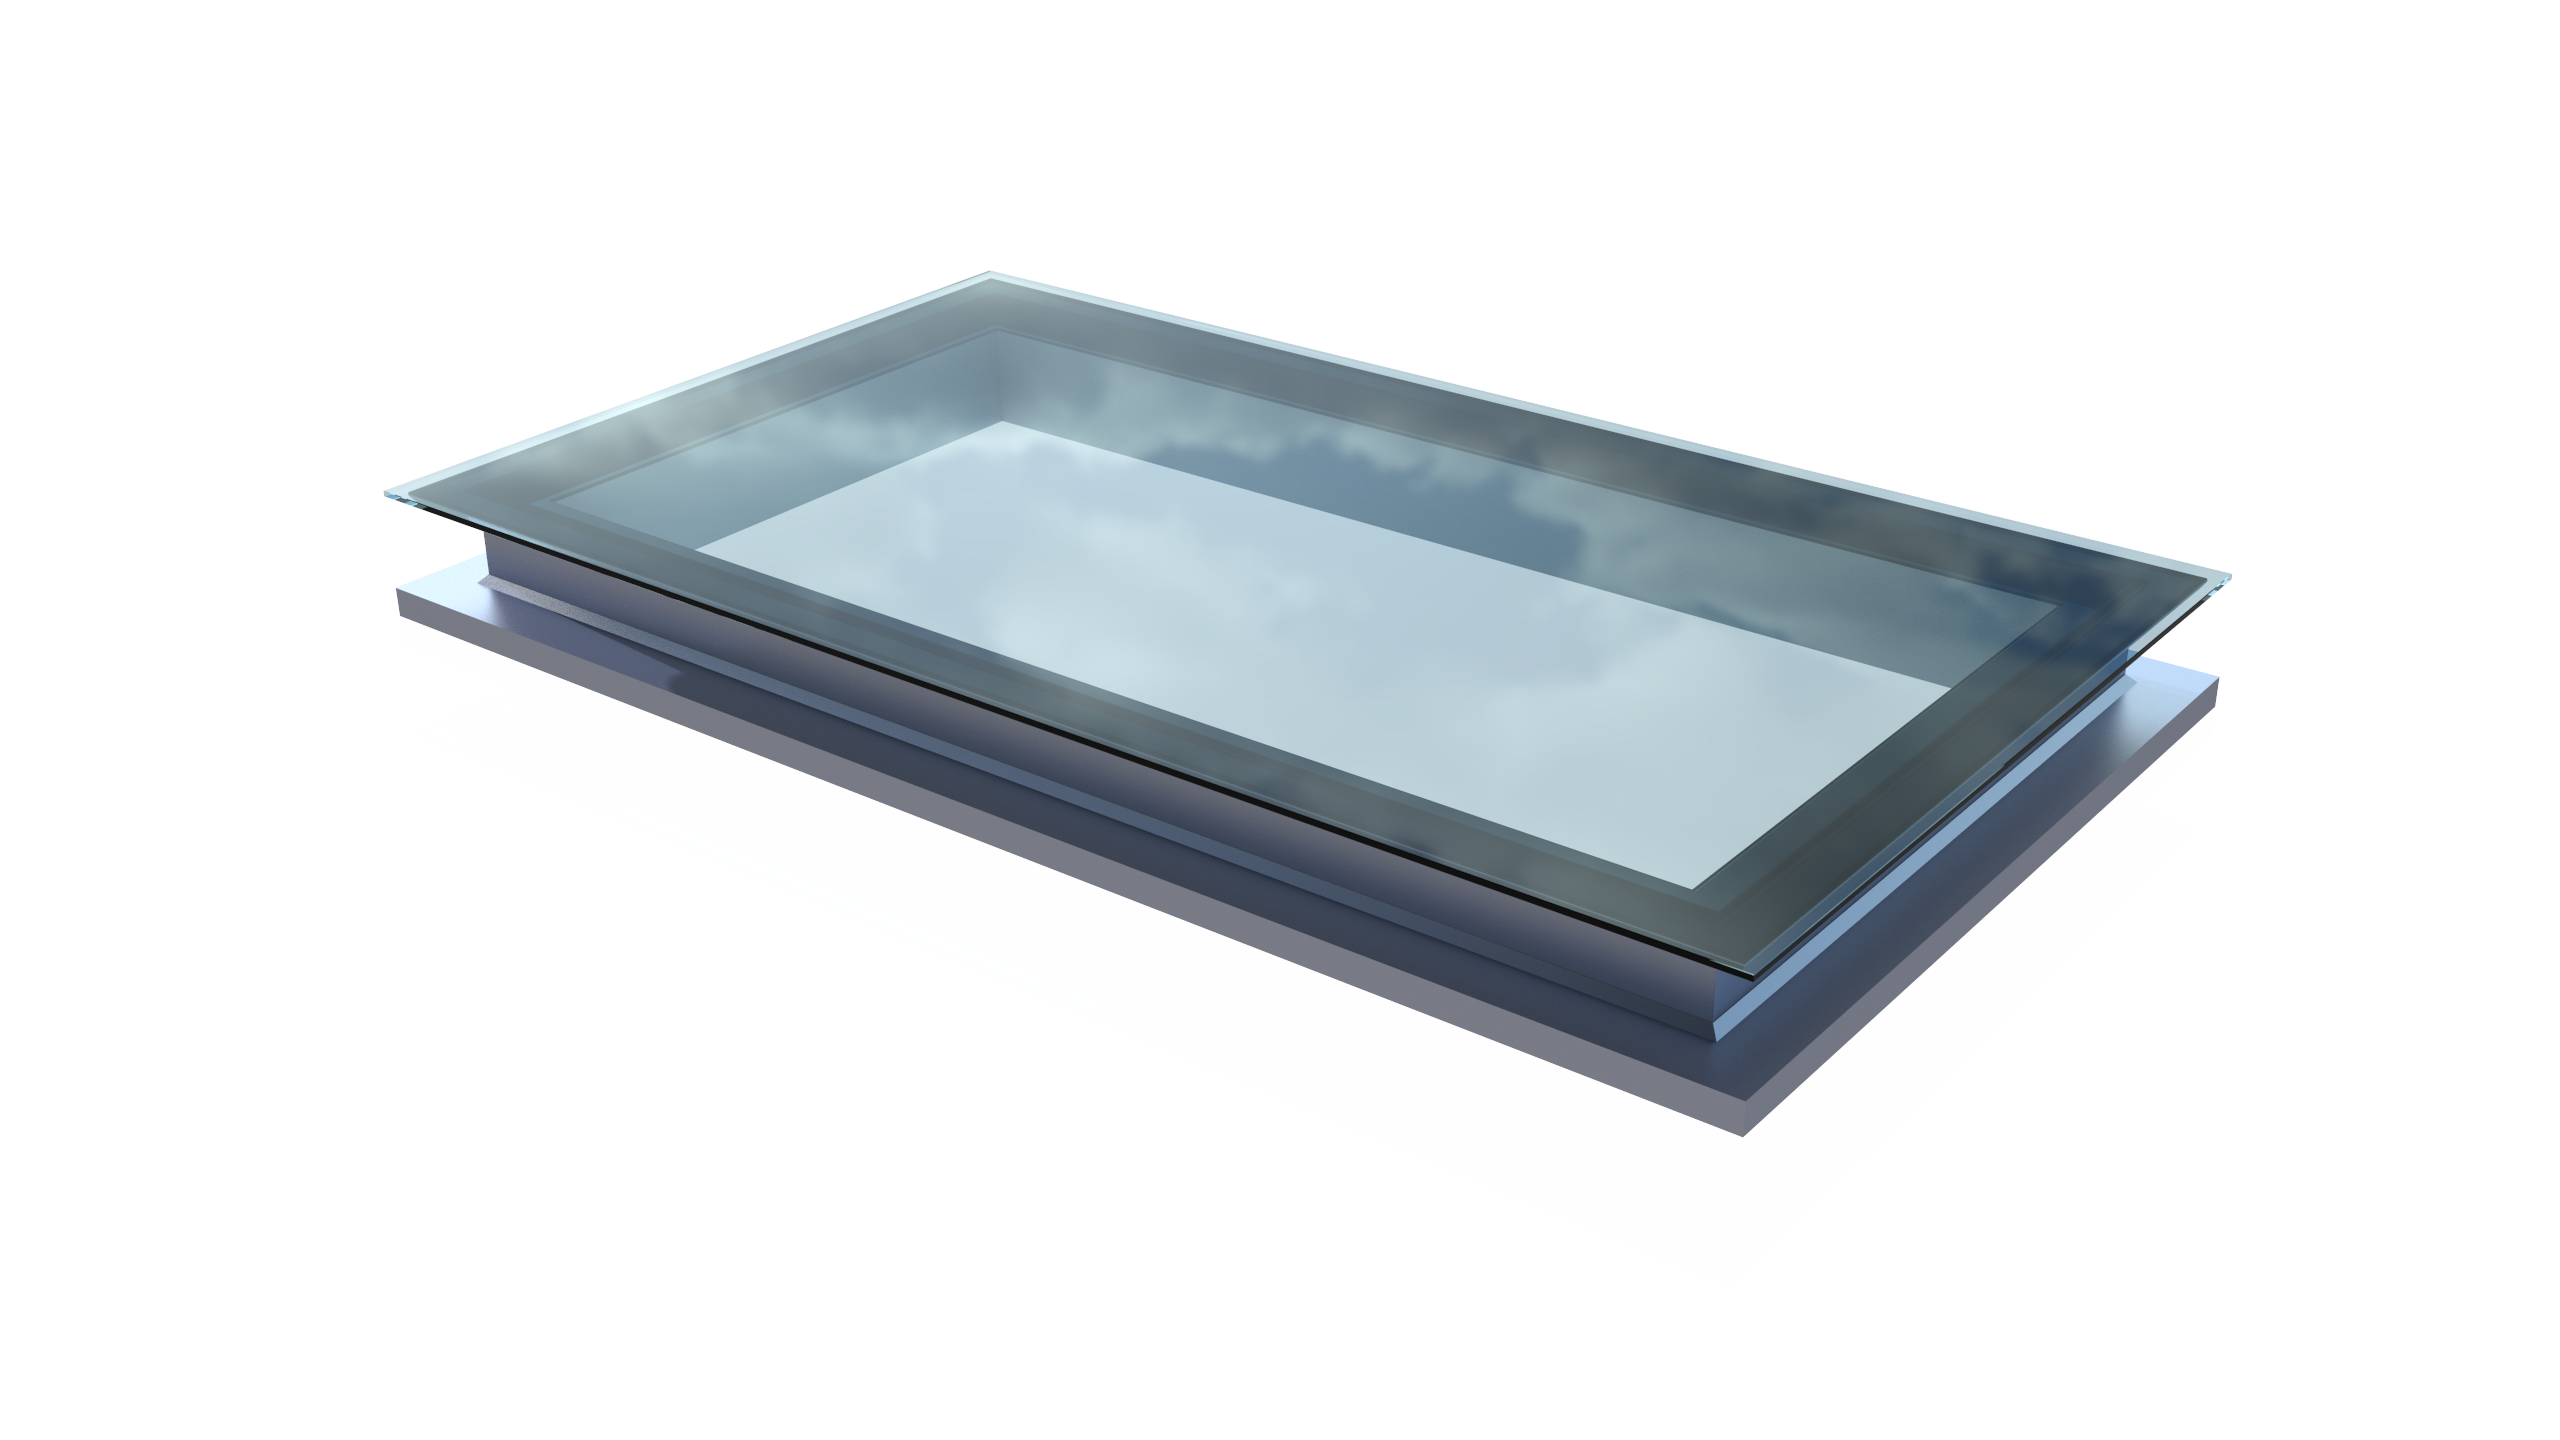 Modern Flat Roof Windows By Ofset Can Be Designed And Costed Online You Choose The Frame Colours Glass Tints Specificatio Roof Light Roof Window Glass Roof